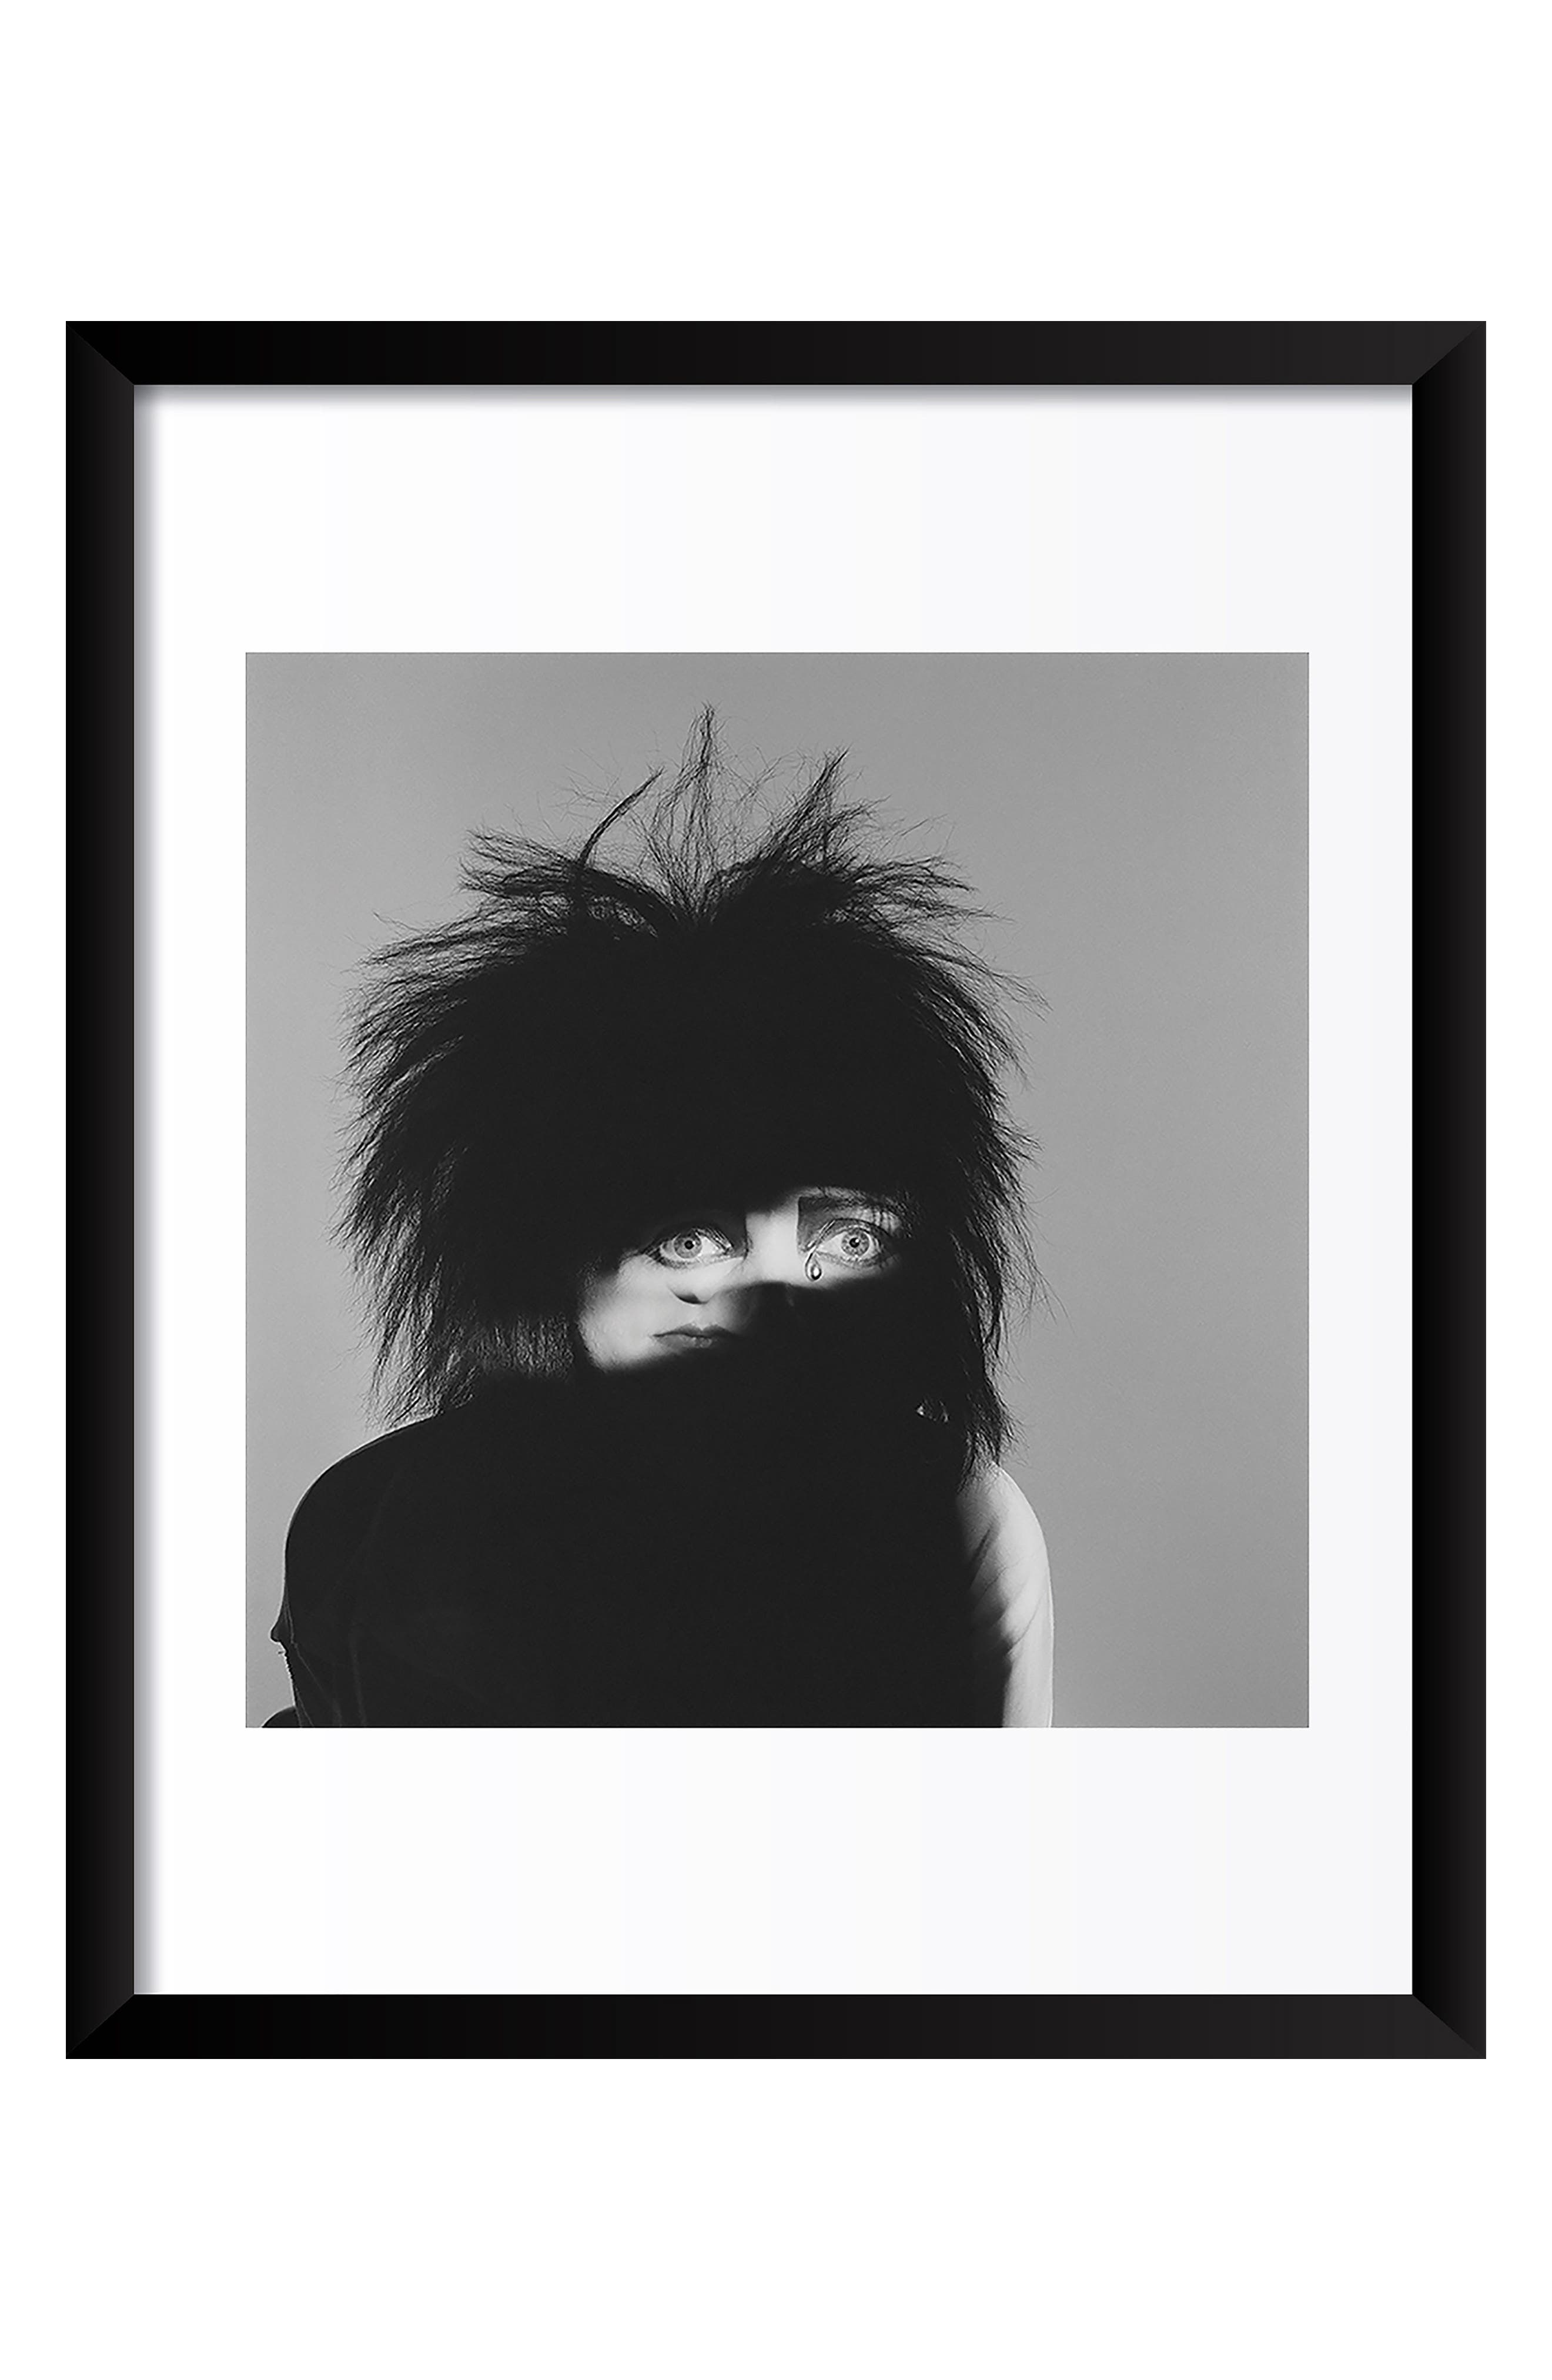 Alternate Image 1 Selected - Artography Limited Siouxsie Sioux Fine Art Print